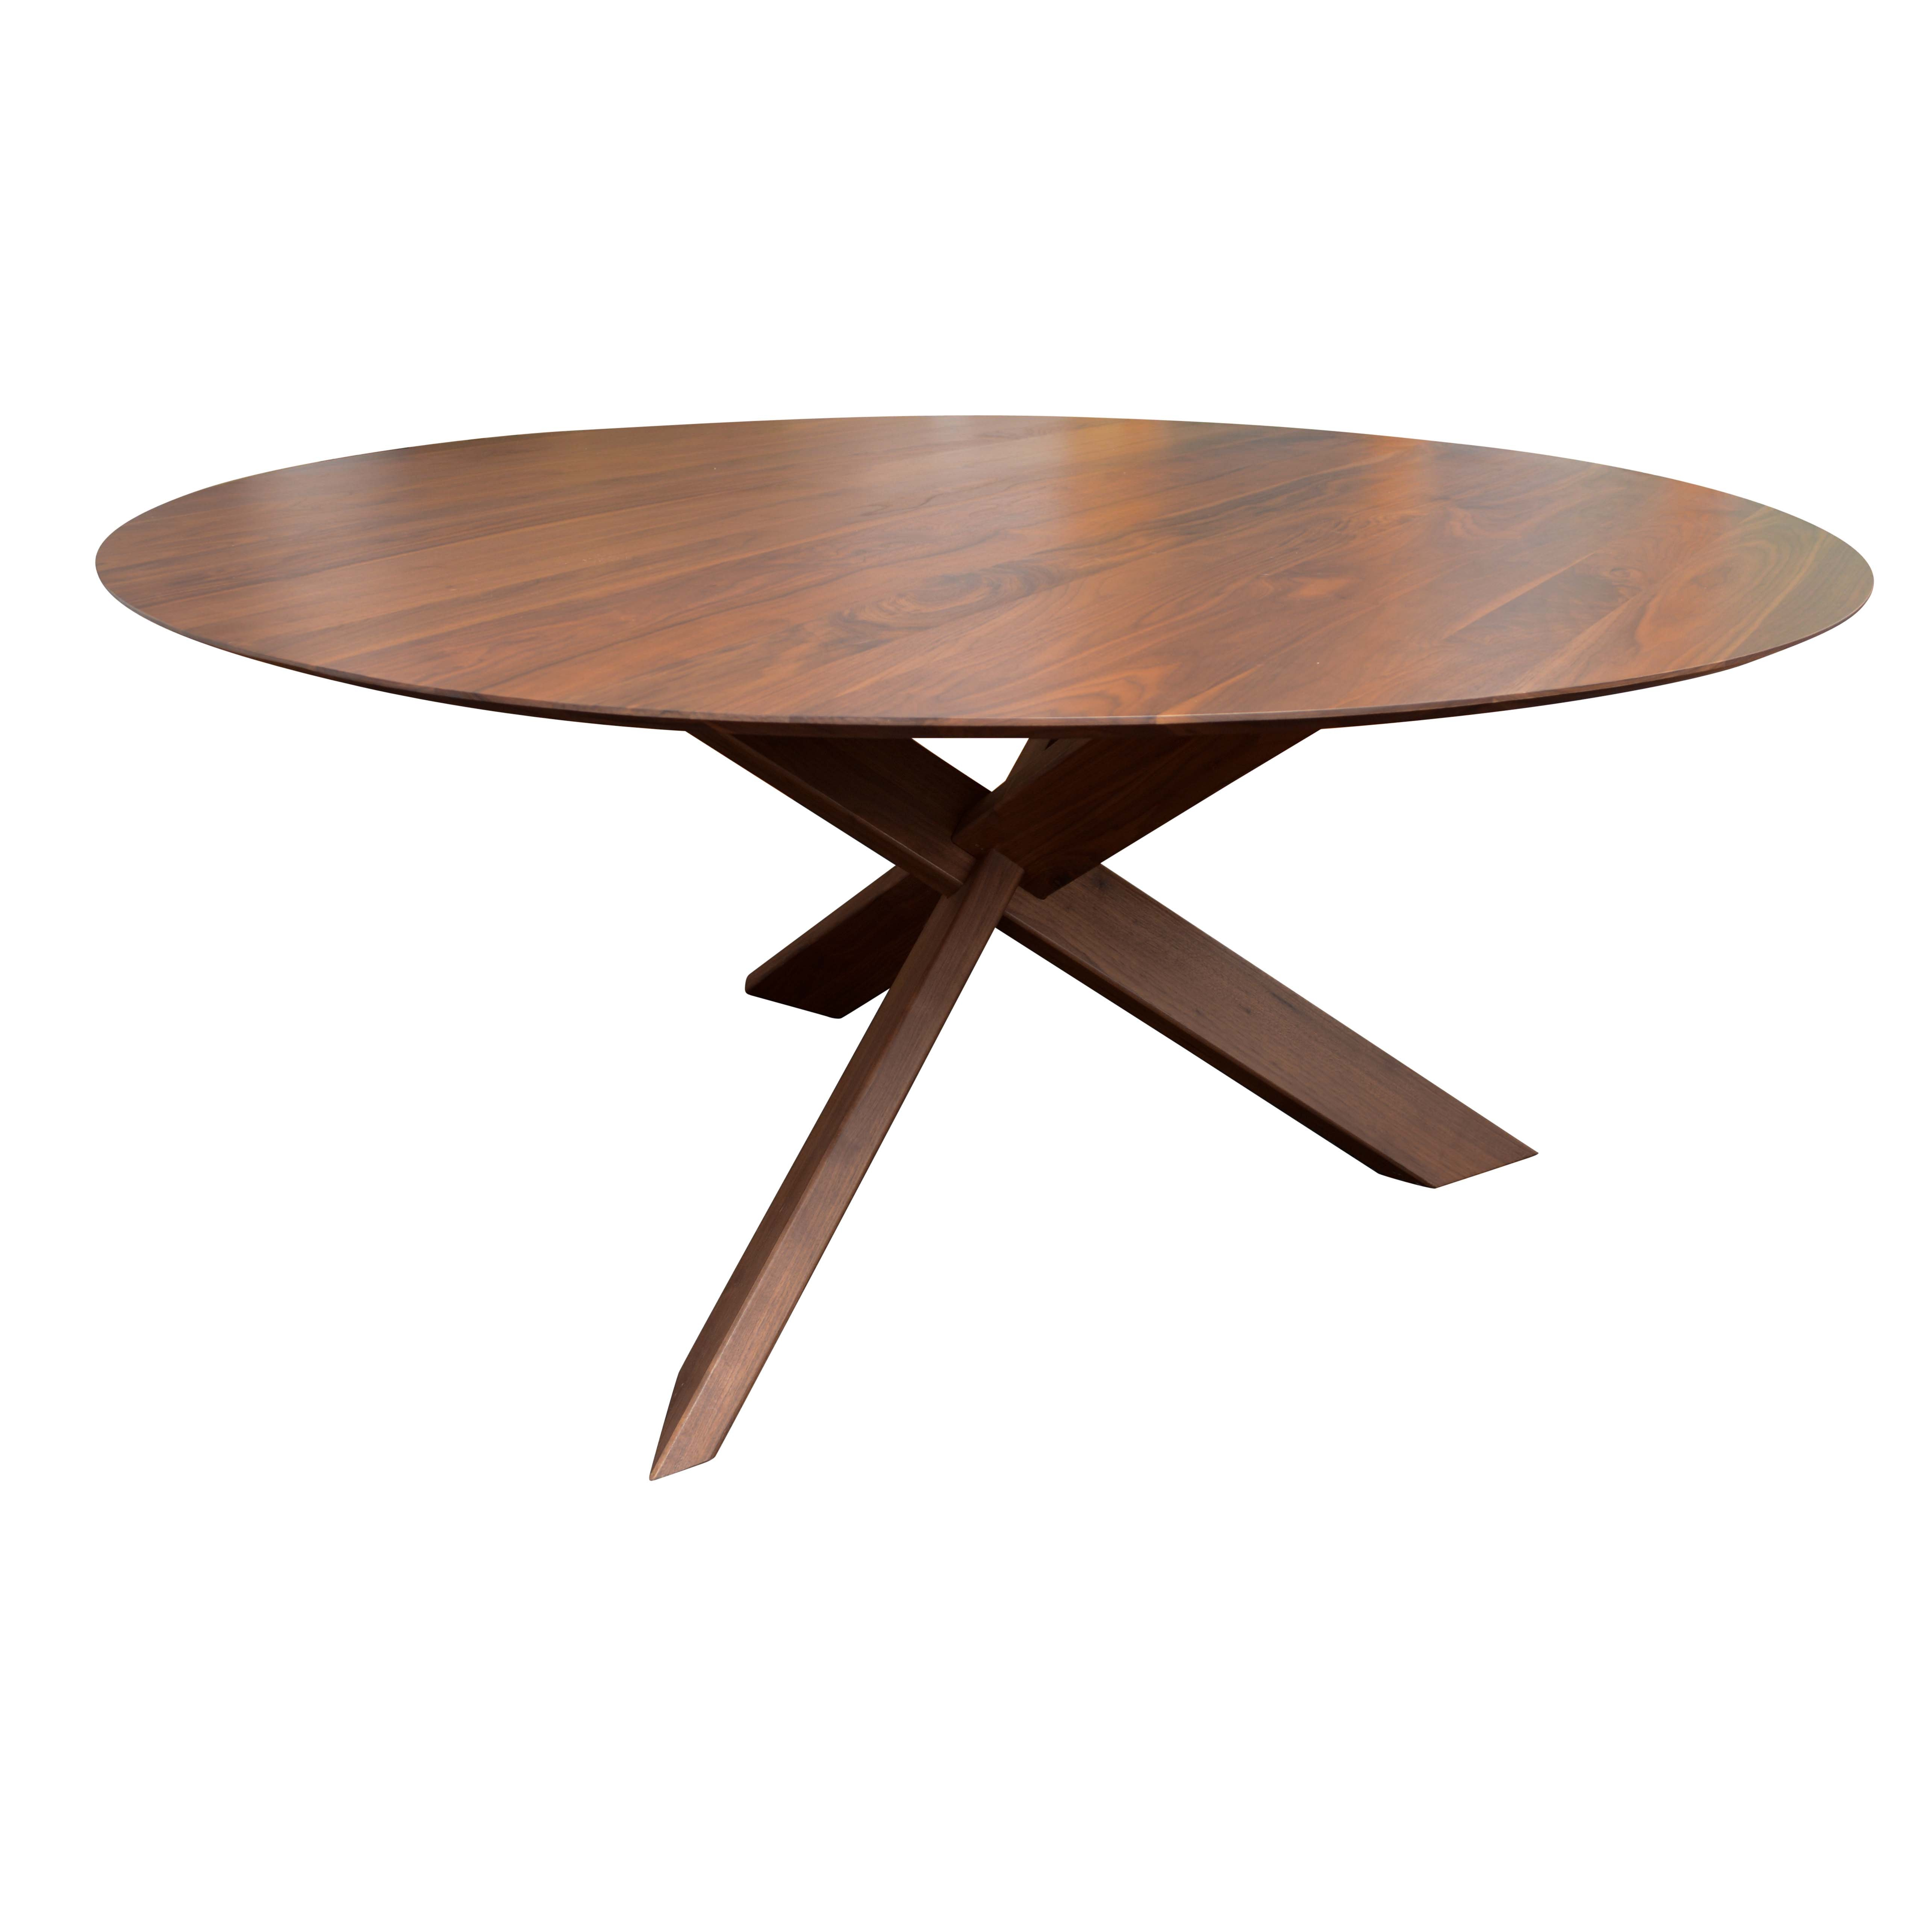 Mid Century Modern Style Dining Table by Crate & Barrel